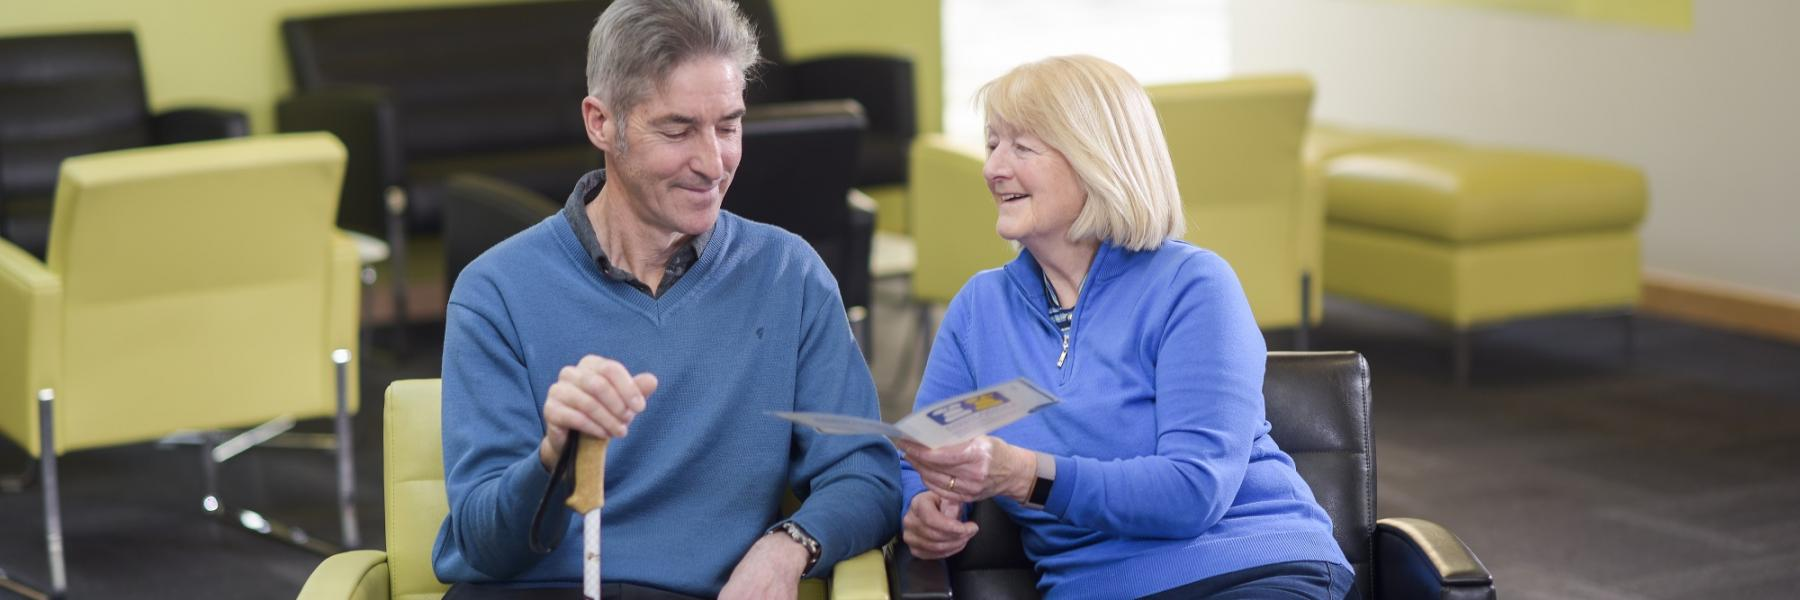 Photograph of two adults sitting down, the woman is showing the man a leaflet